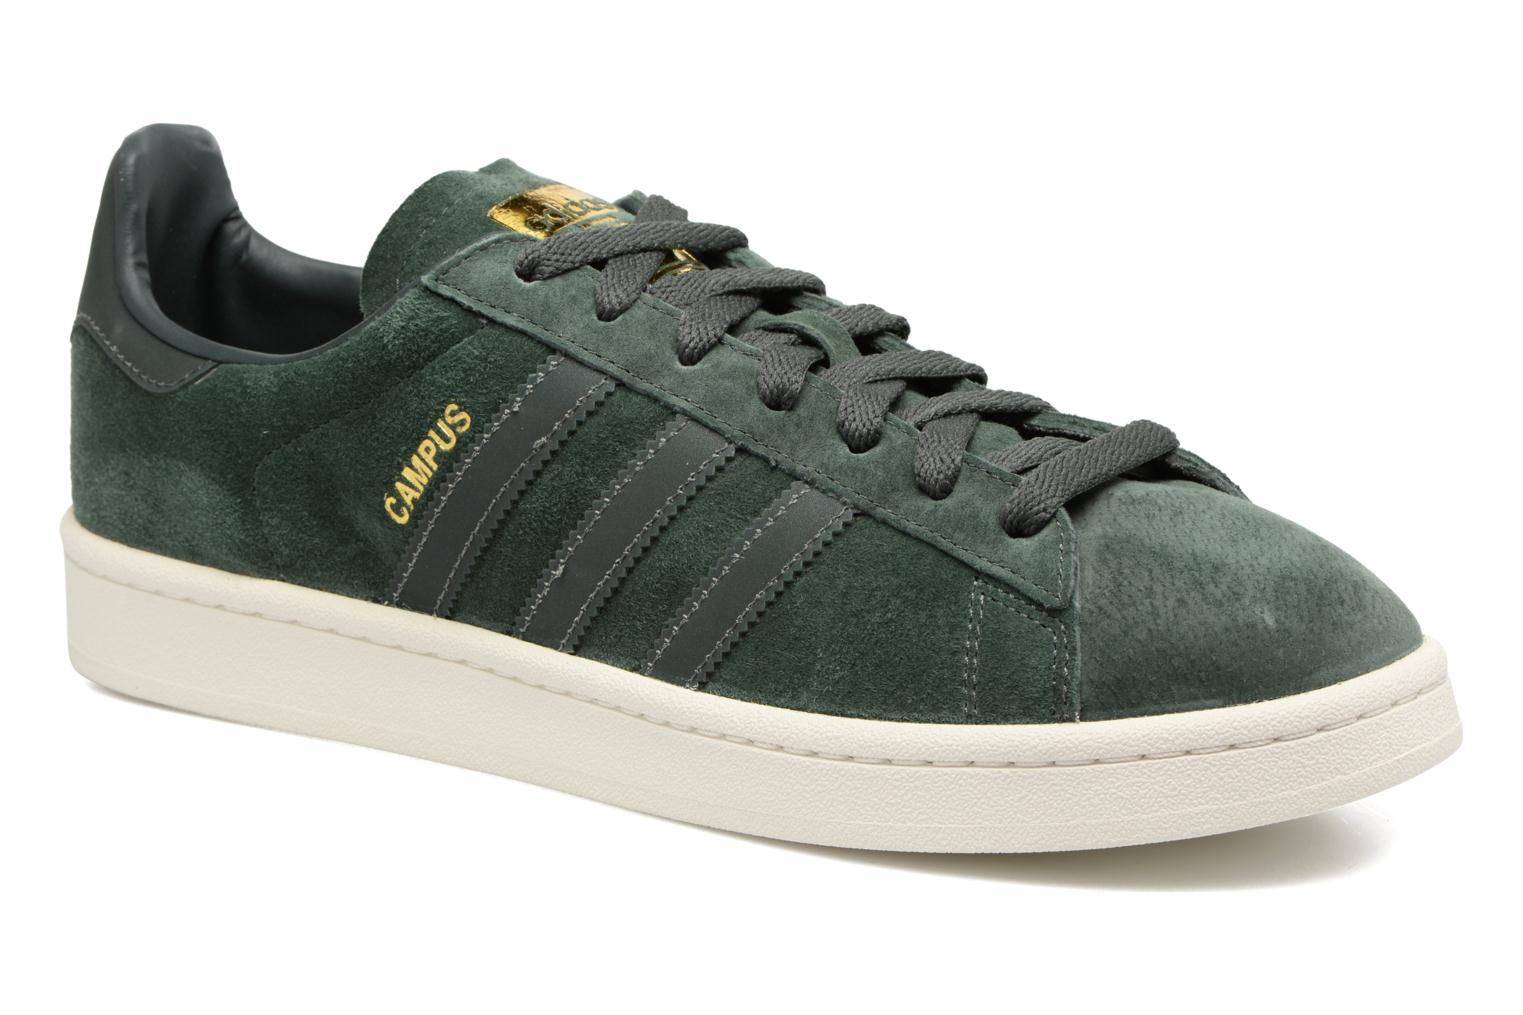 Campus by Adidas OriginalsRebajas - 20%